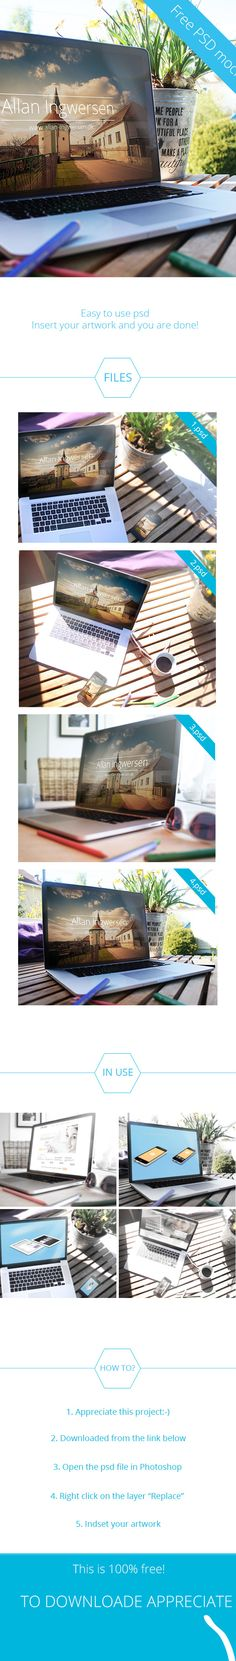 Free PSD Mockup by Allan Ingwersen, via Behance